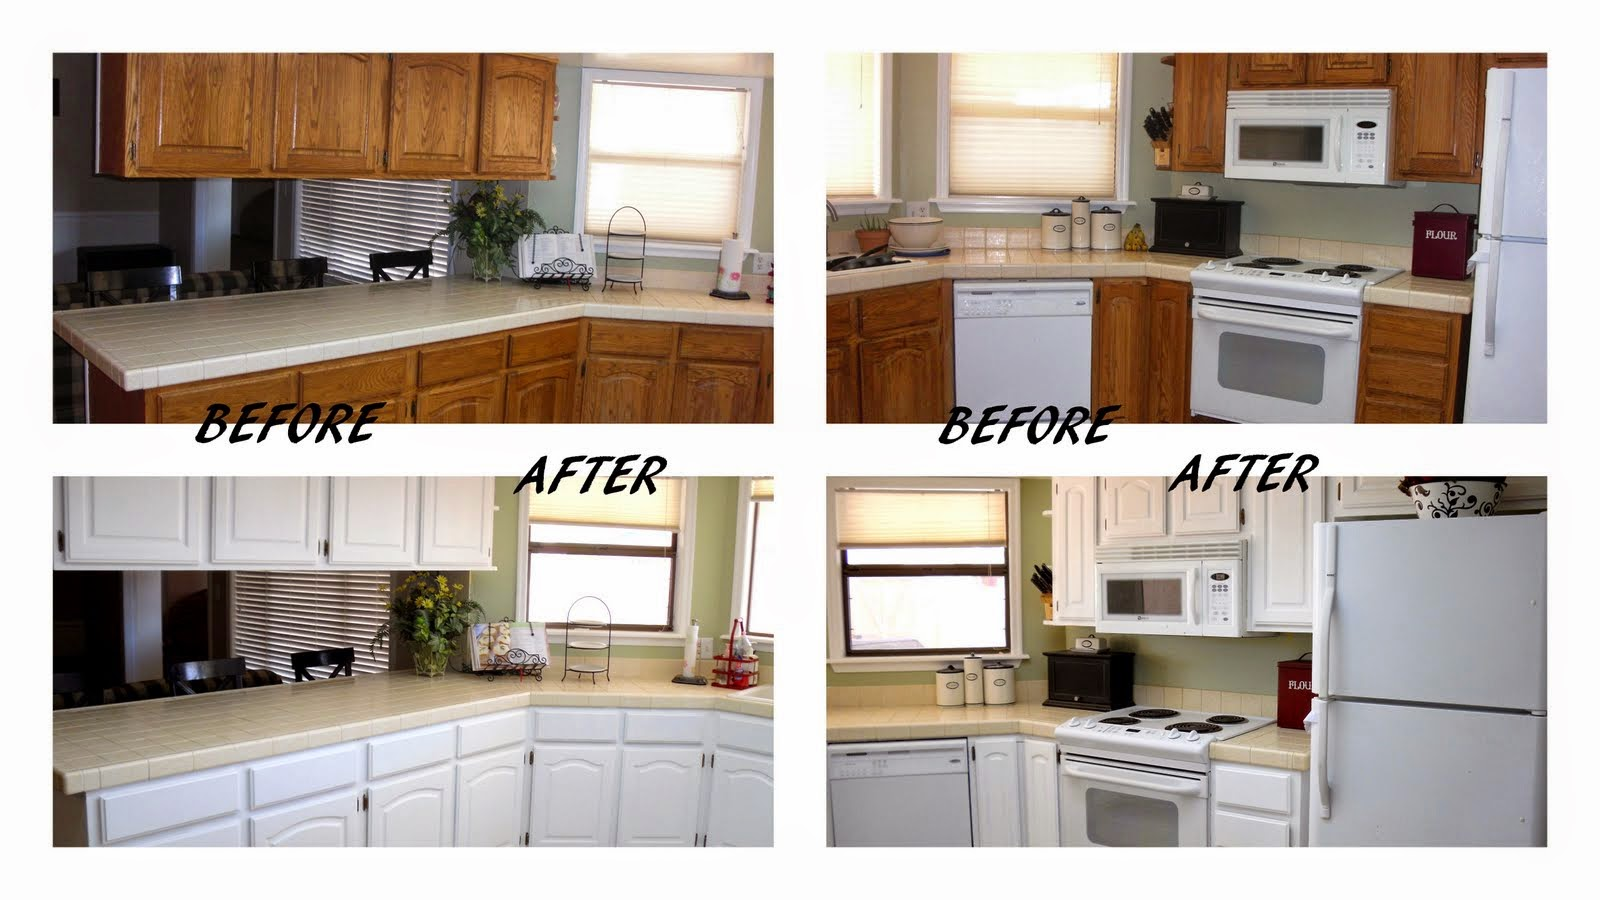 cheap kitchen makeover ideas before and budget kitchen remodel Cheap Kitchen Makeover Ideas Before And After